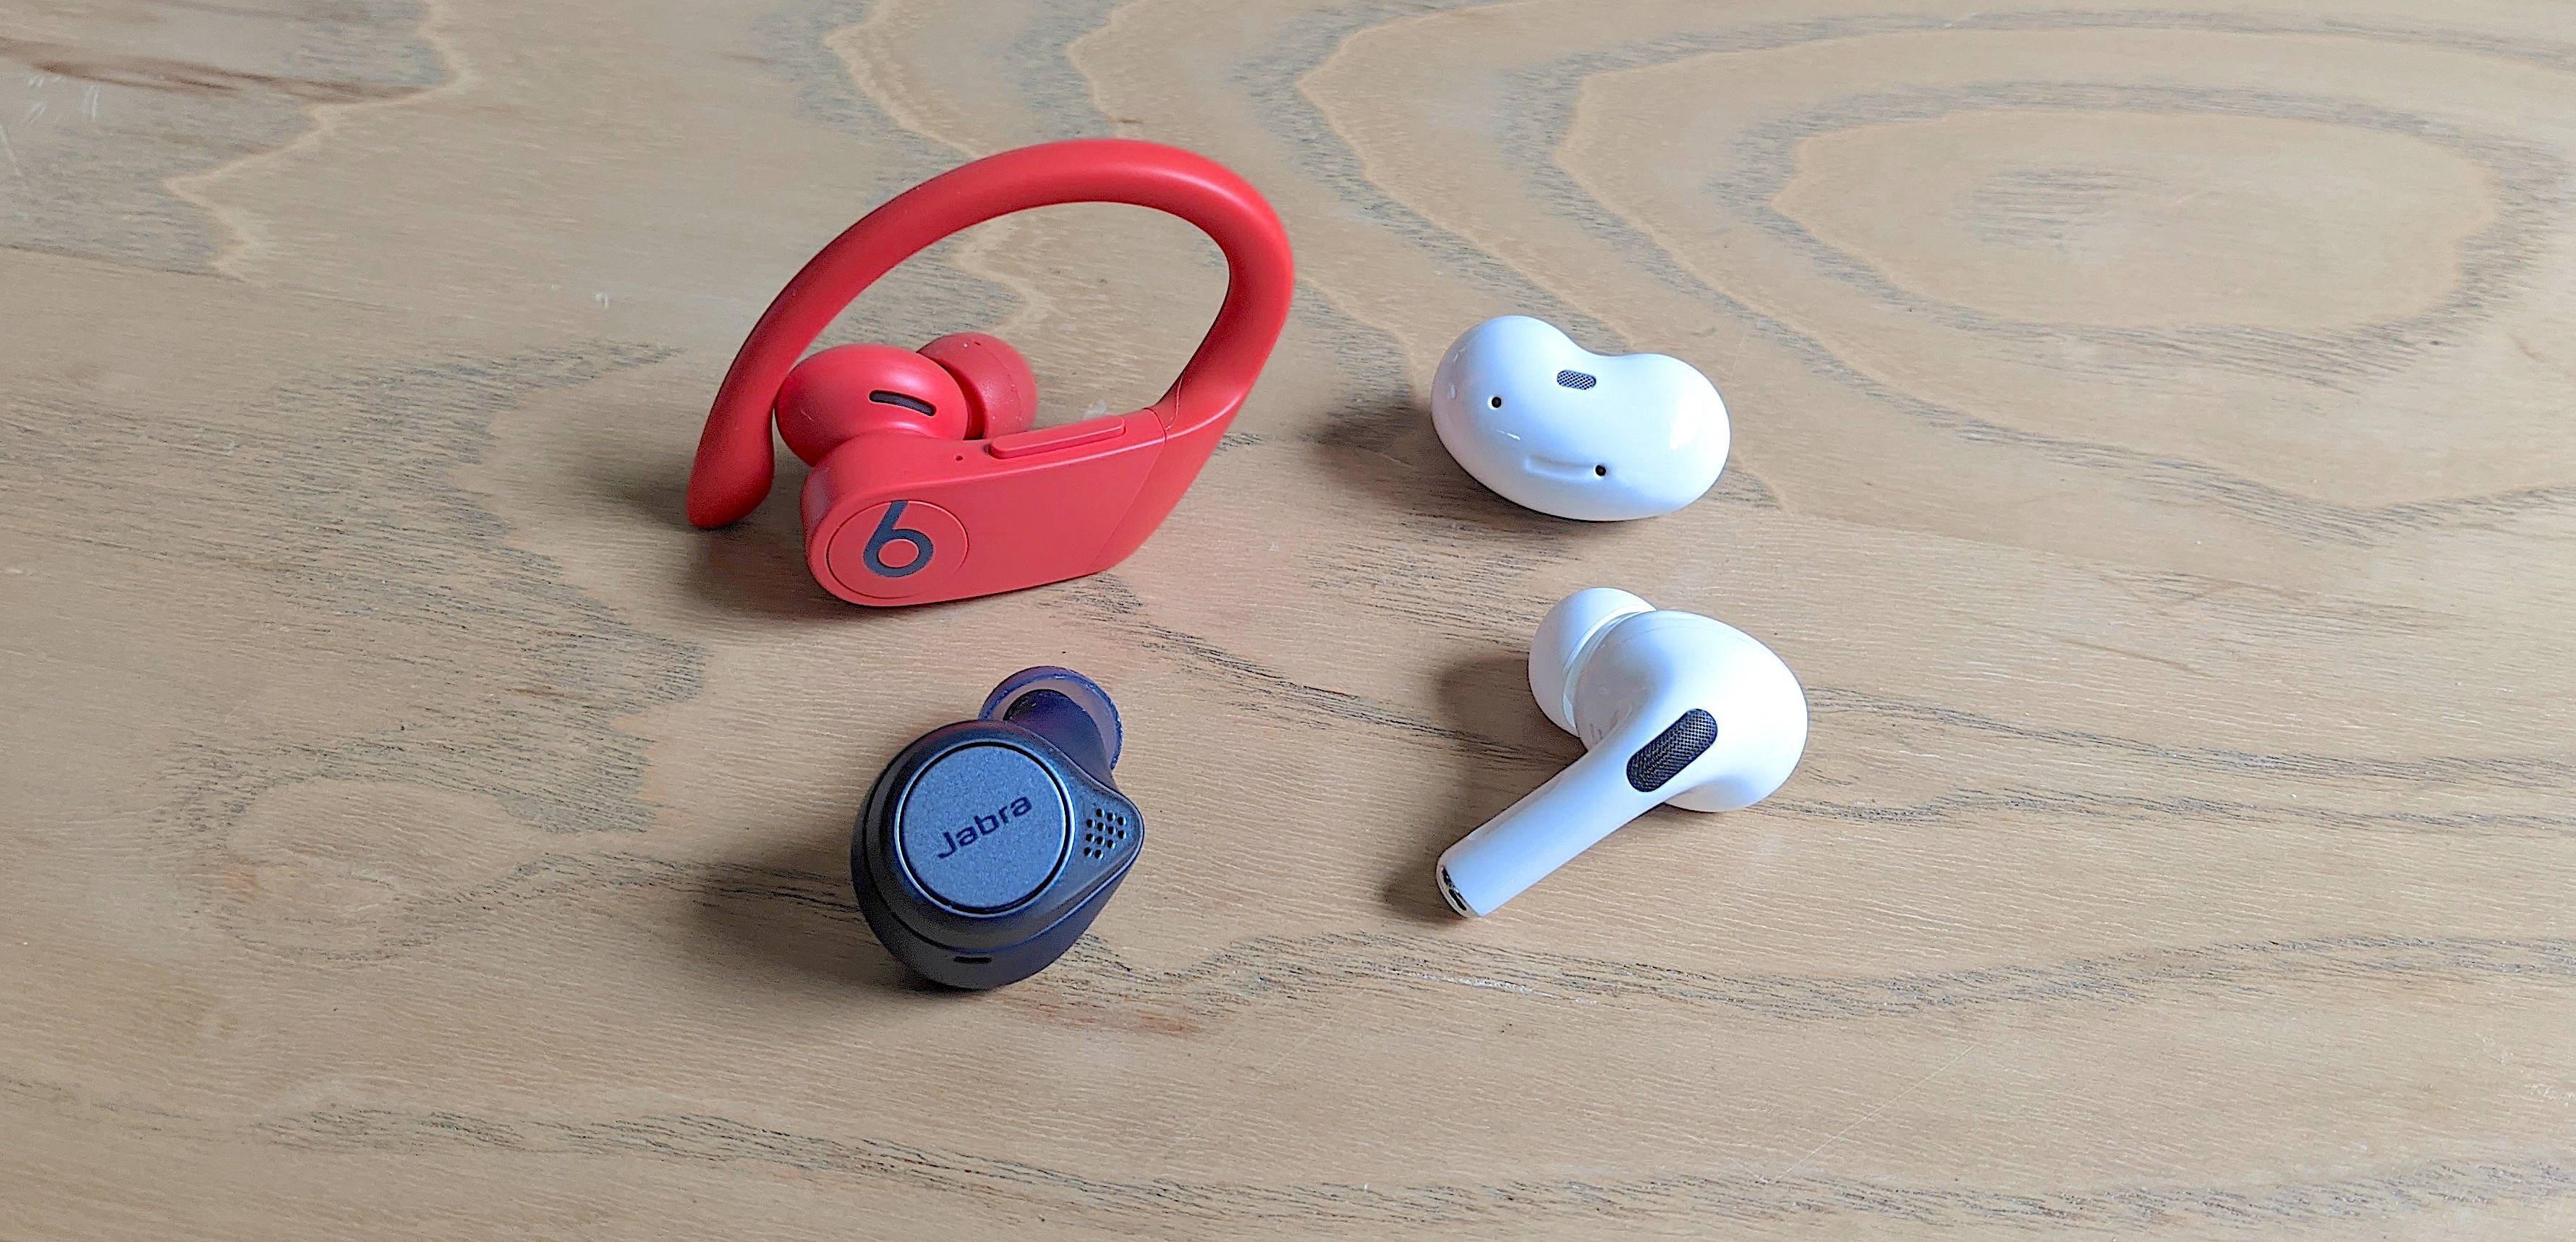 Tips for buying the best wireless earbuds